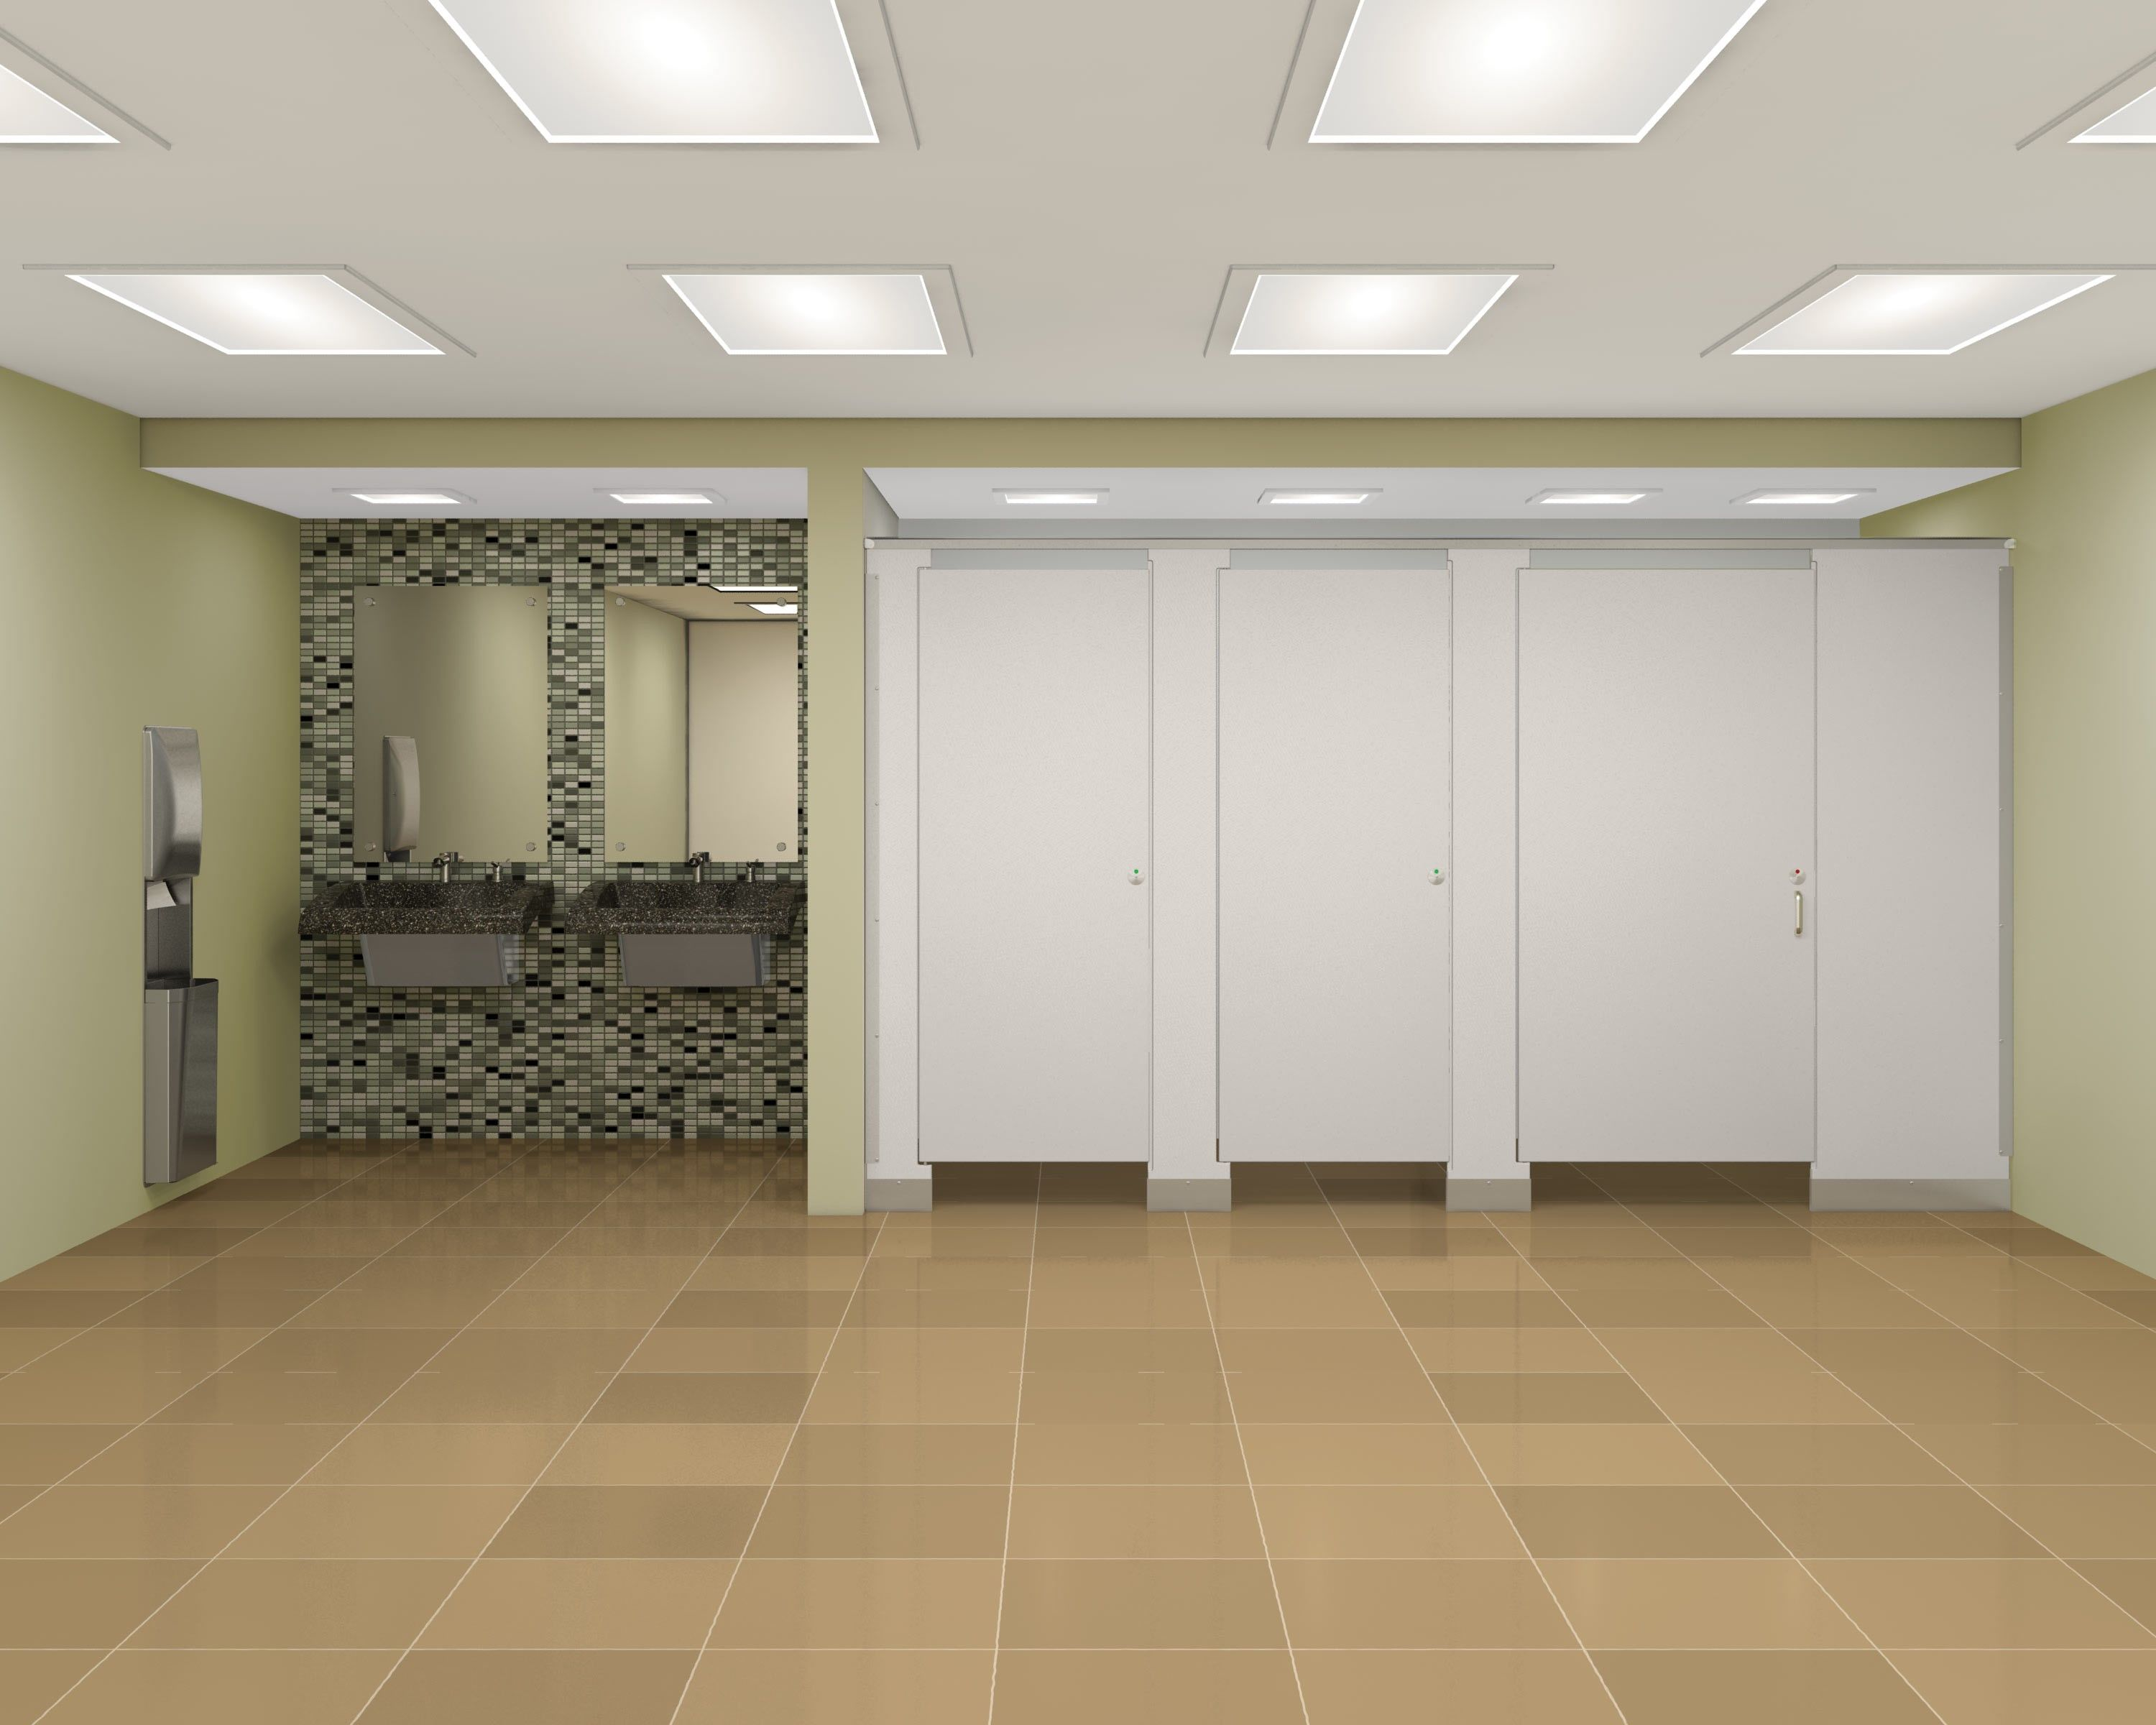 Bradmar Partitions Improve Public Restrooms And Create A Sanctuary - Partitions for bathroom stalls